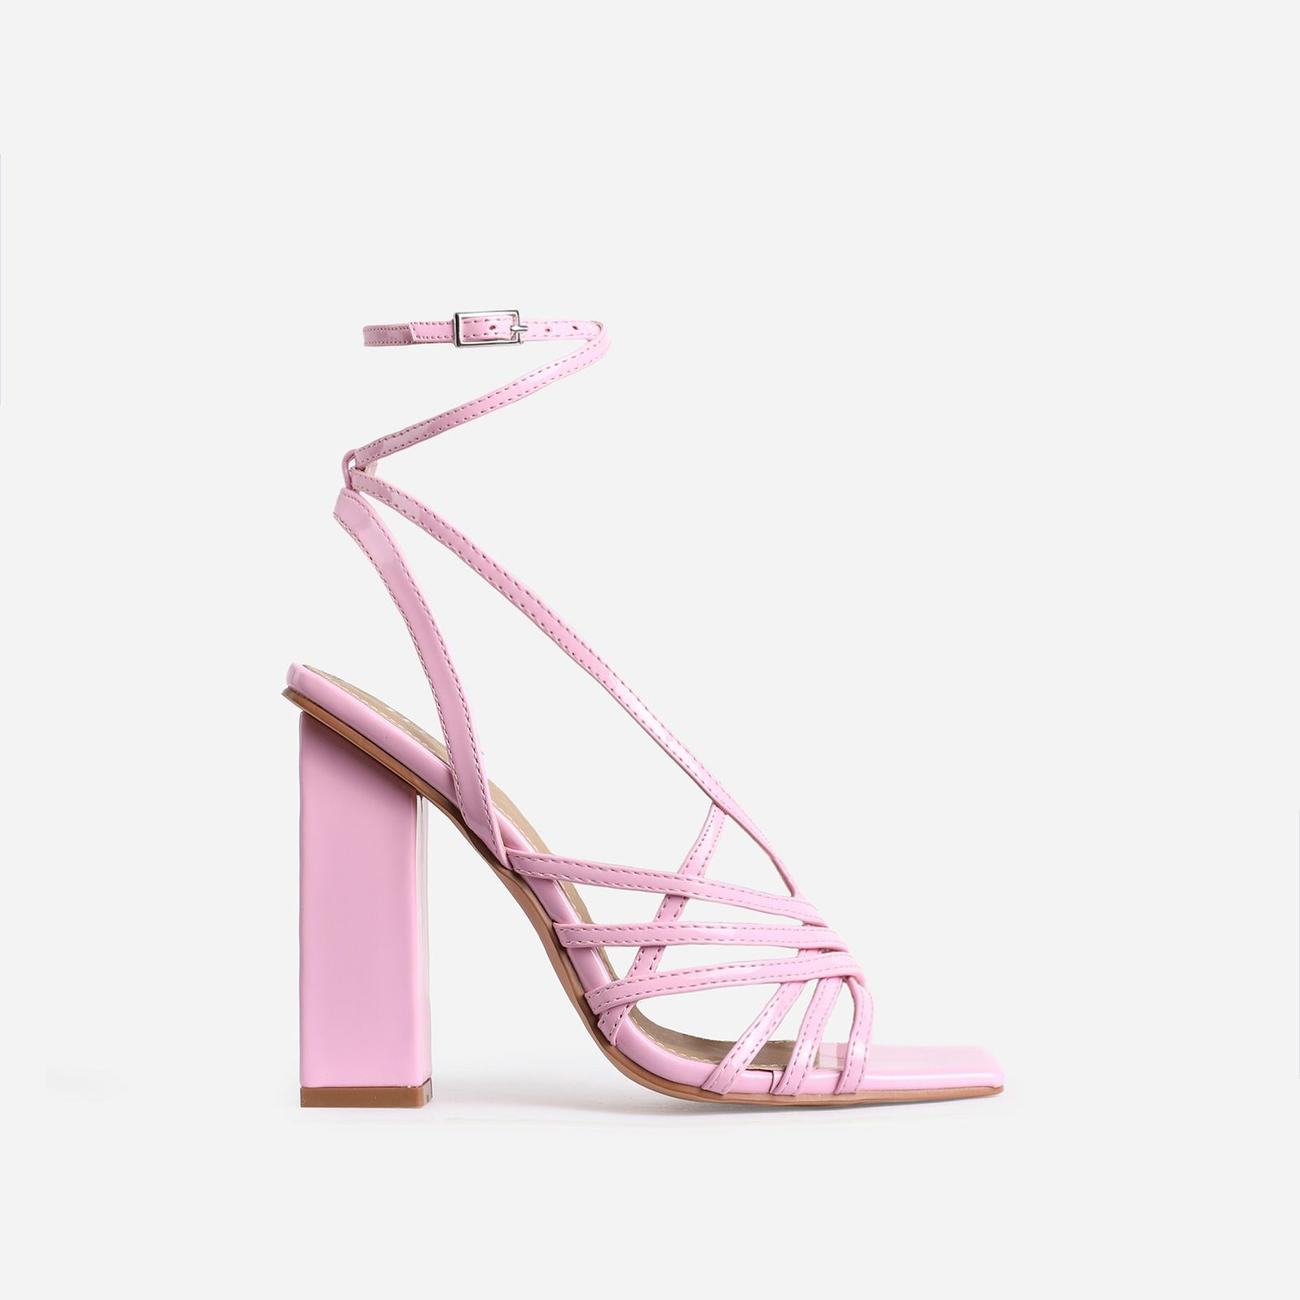 Dancer Square Toe Strappy Block Heel In Pink Patent Image 1